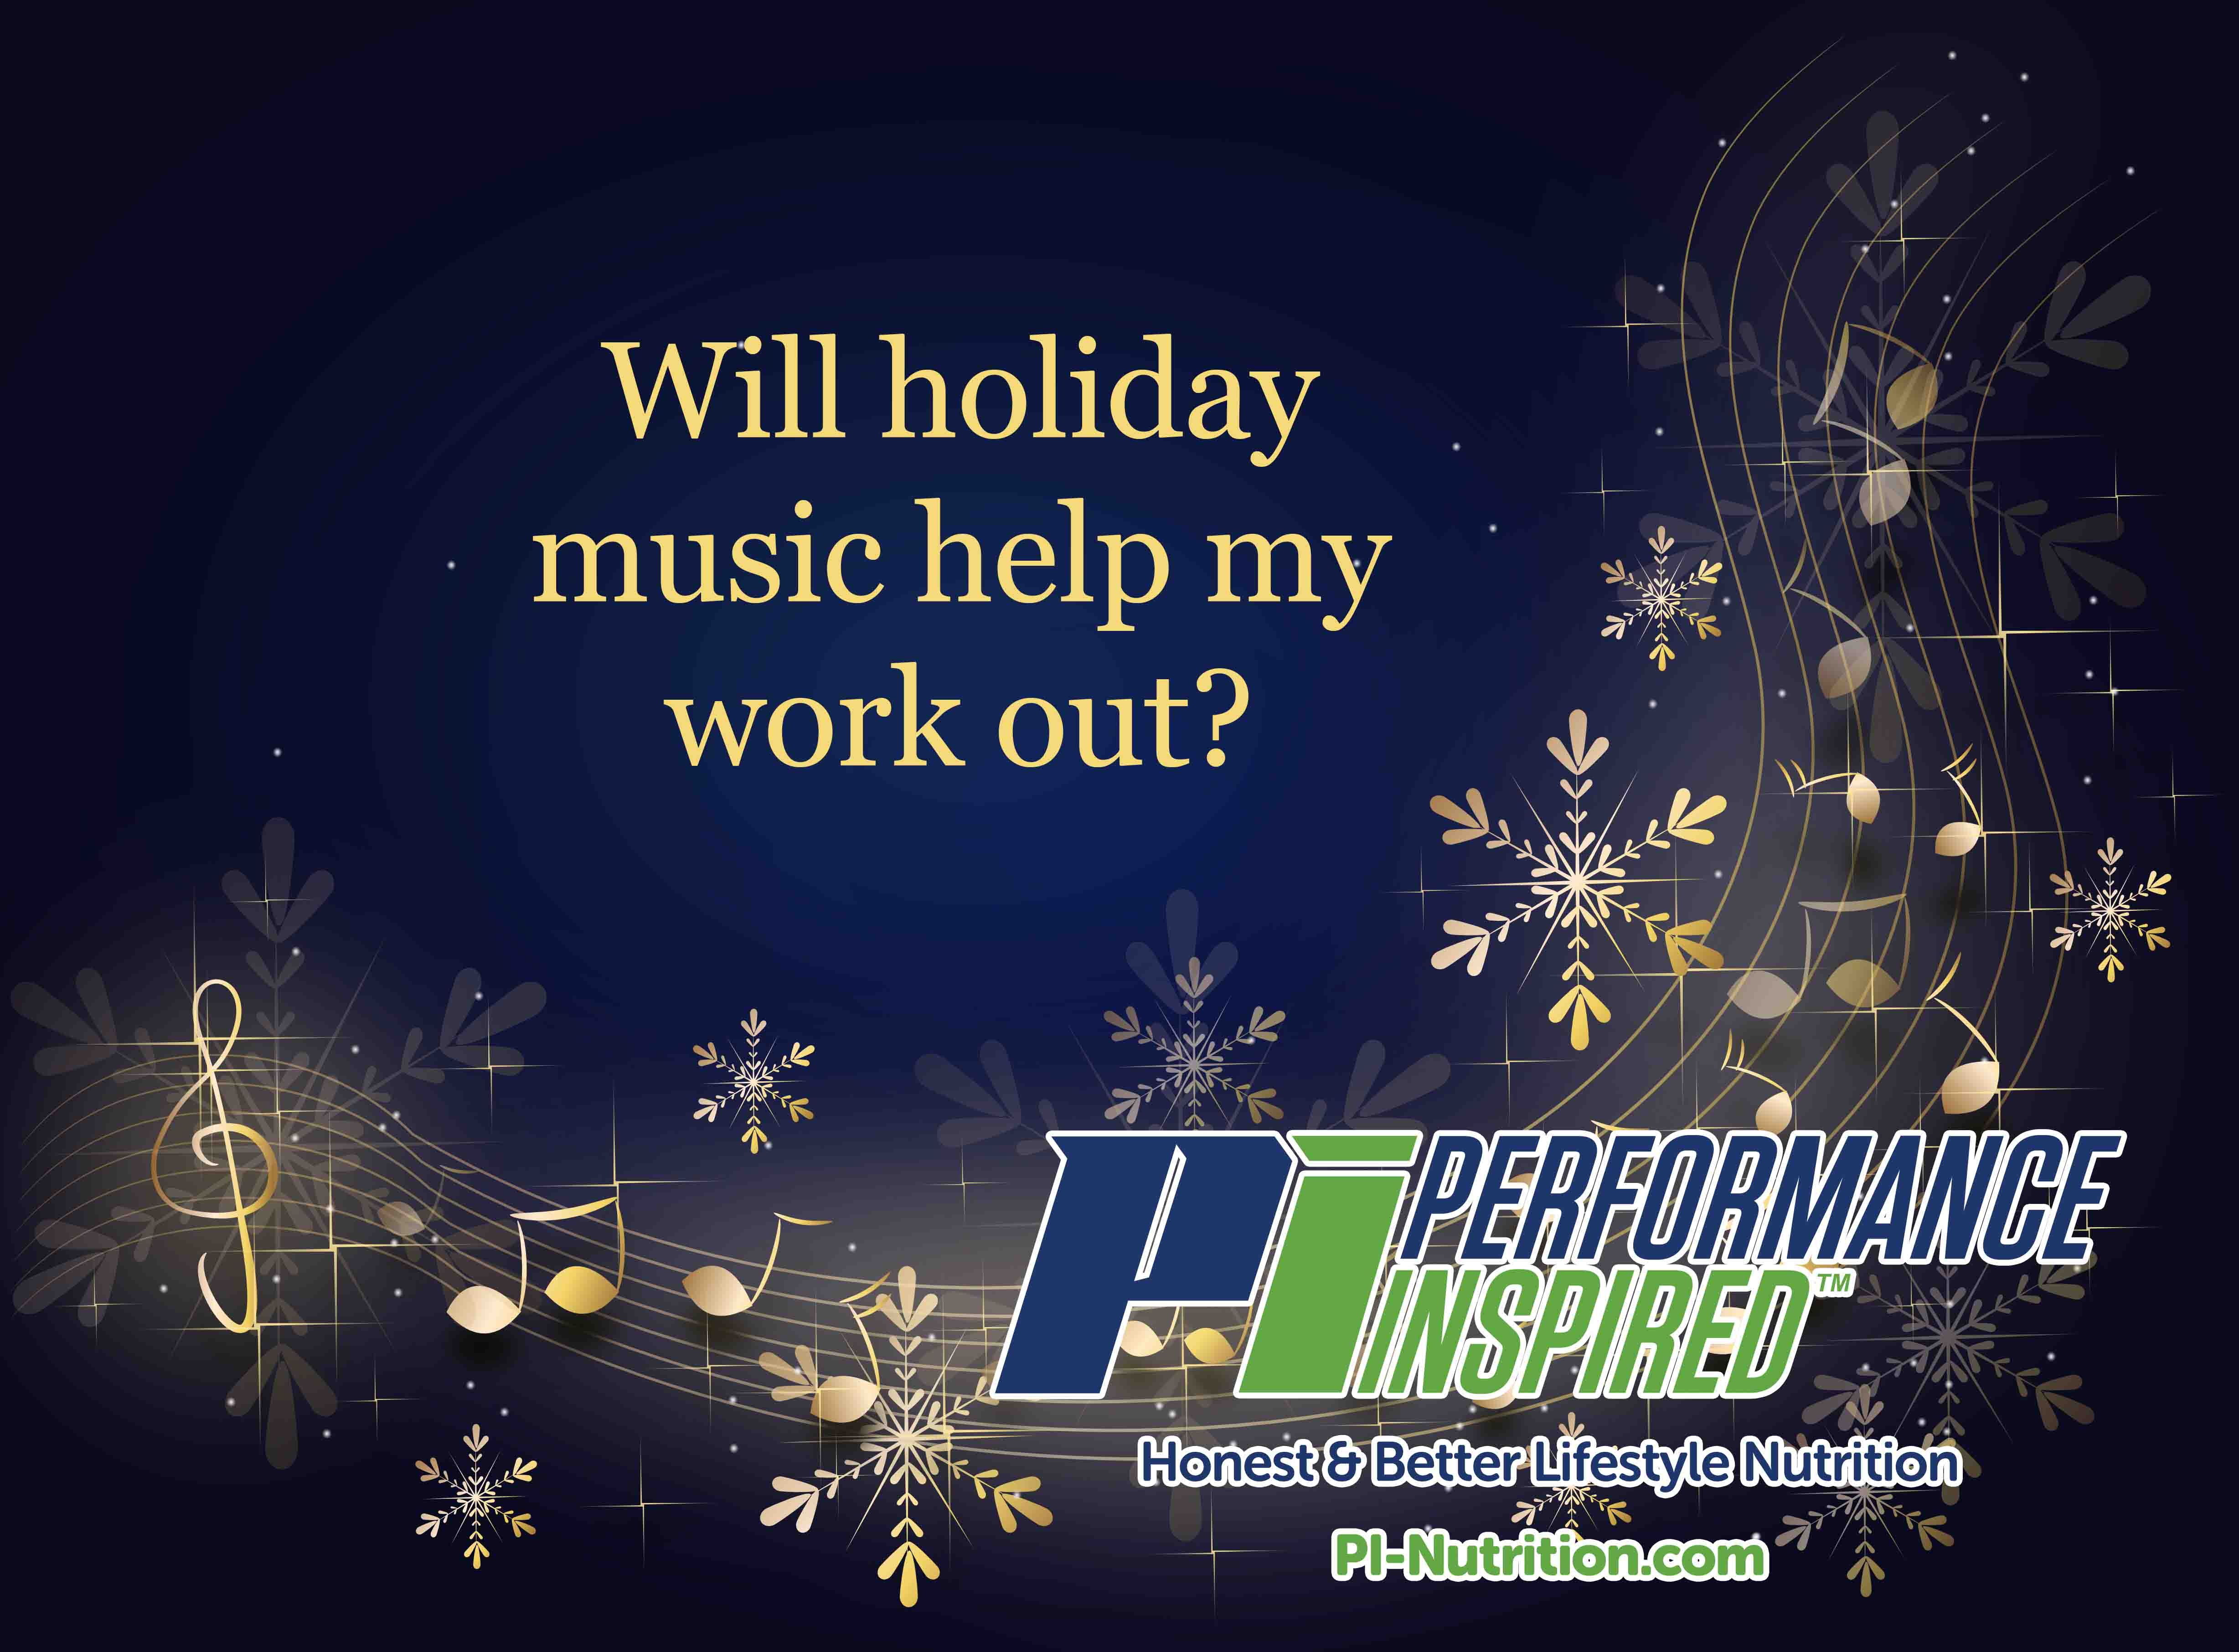 Will holiday music help my work out?